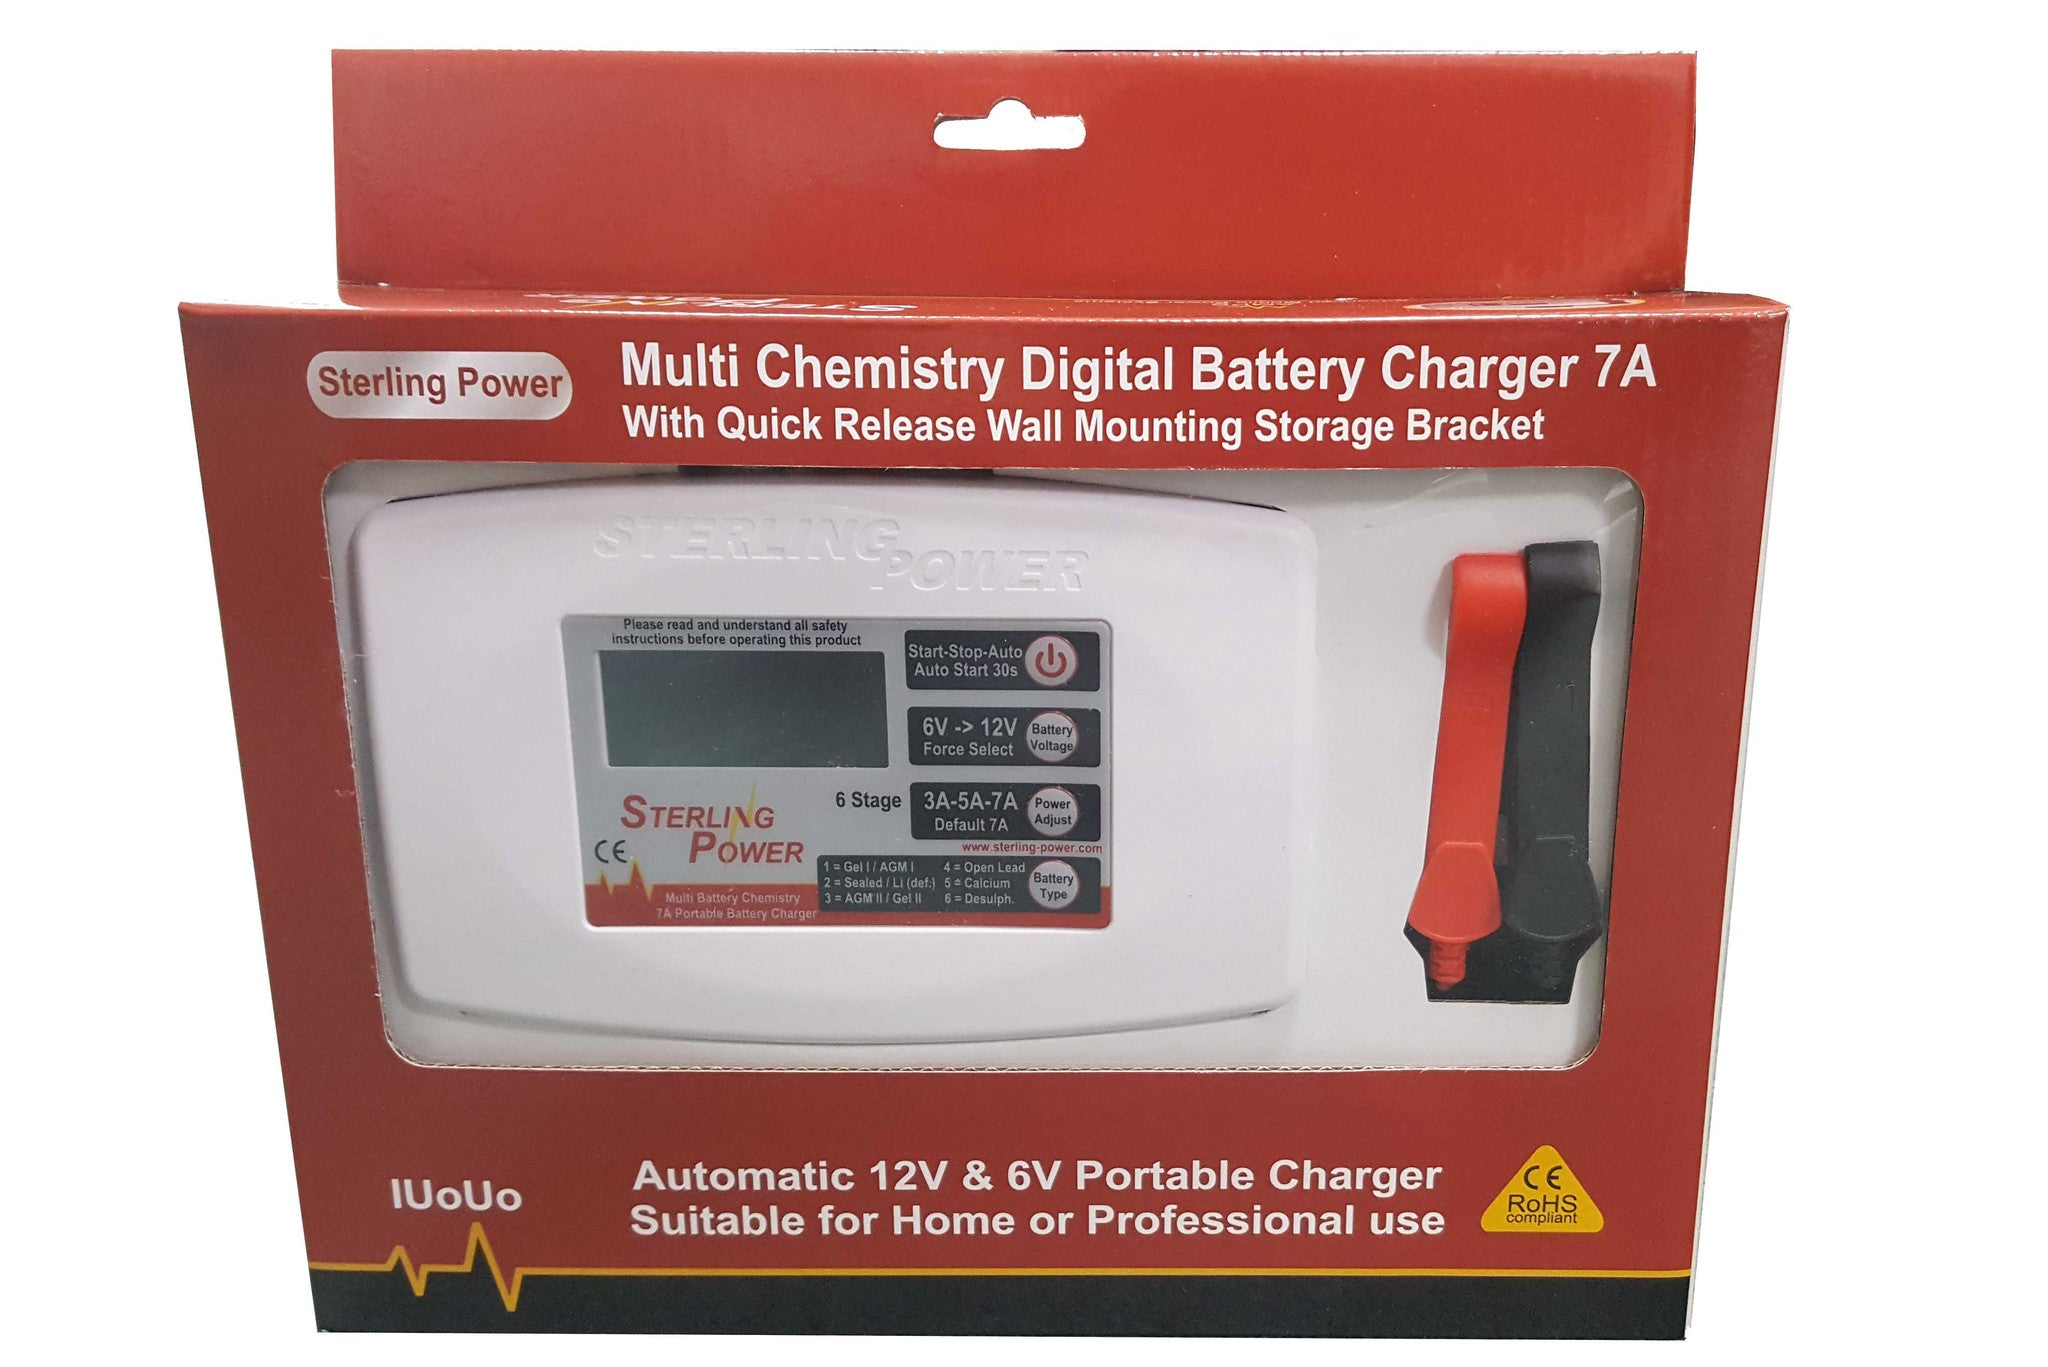 Ultra Portable 7A Battery Charger